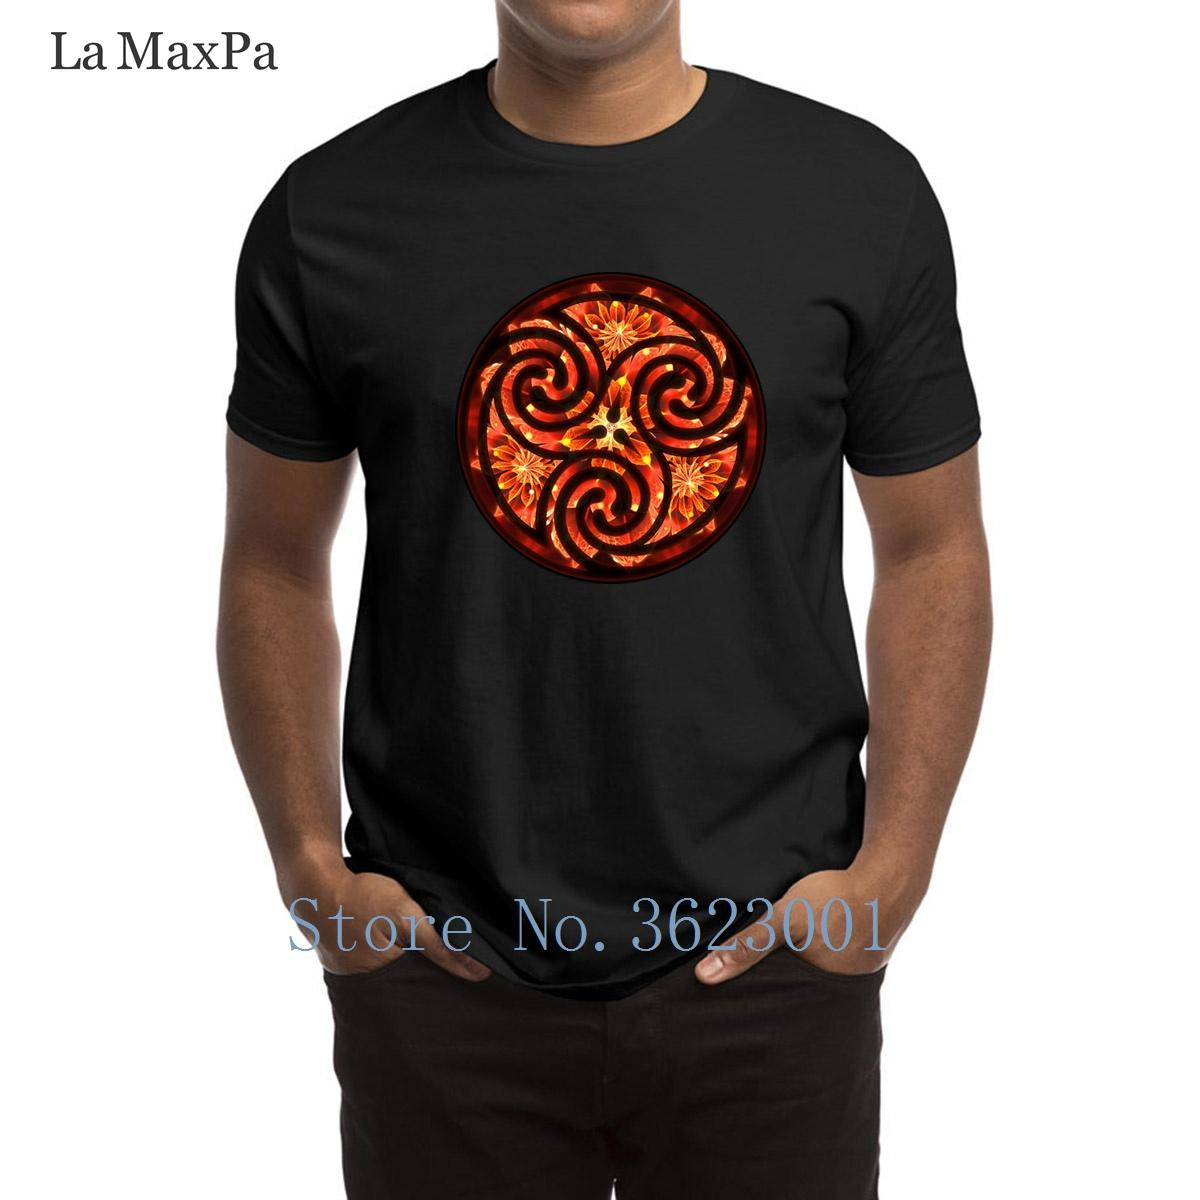 Printed Letter T-Shirt Red Dahlia Fractal Flower Triskelion T Shirt Family Clothes Tee Shirt Man New 100% Cotton Tshirt Fitness